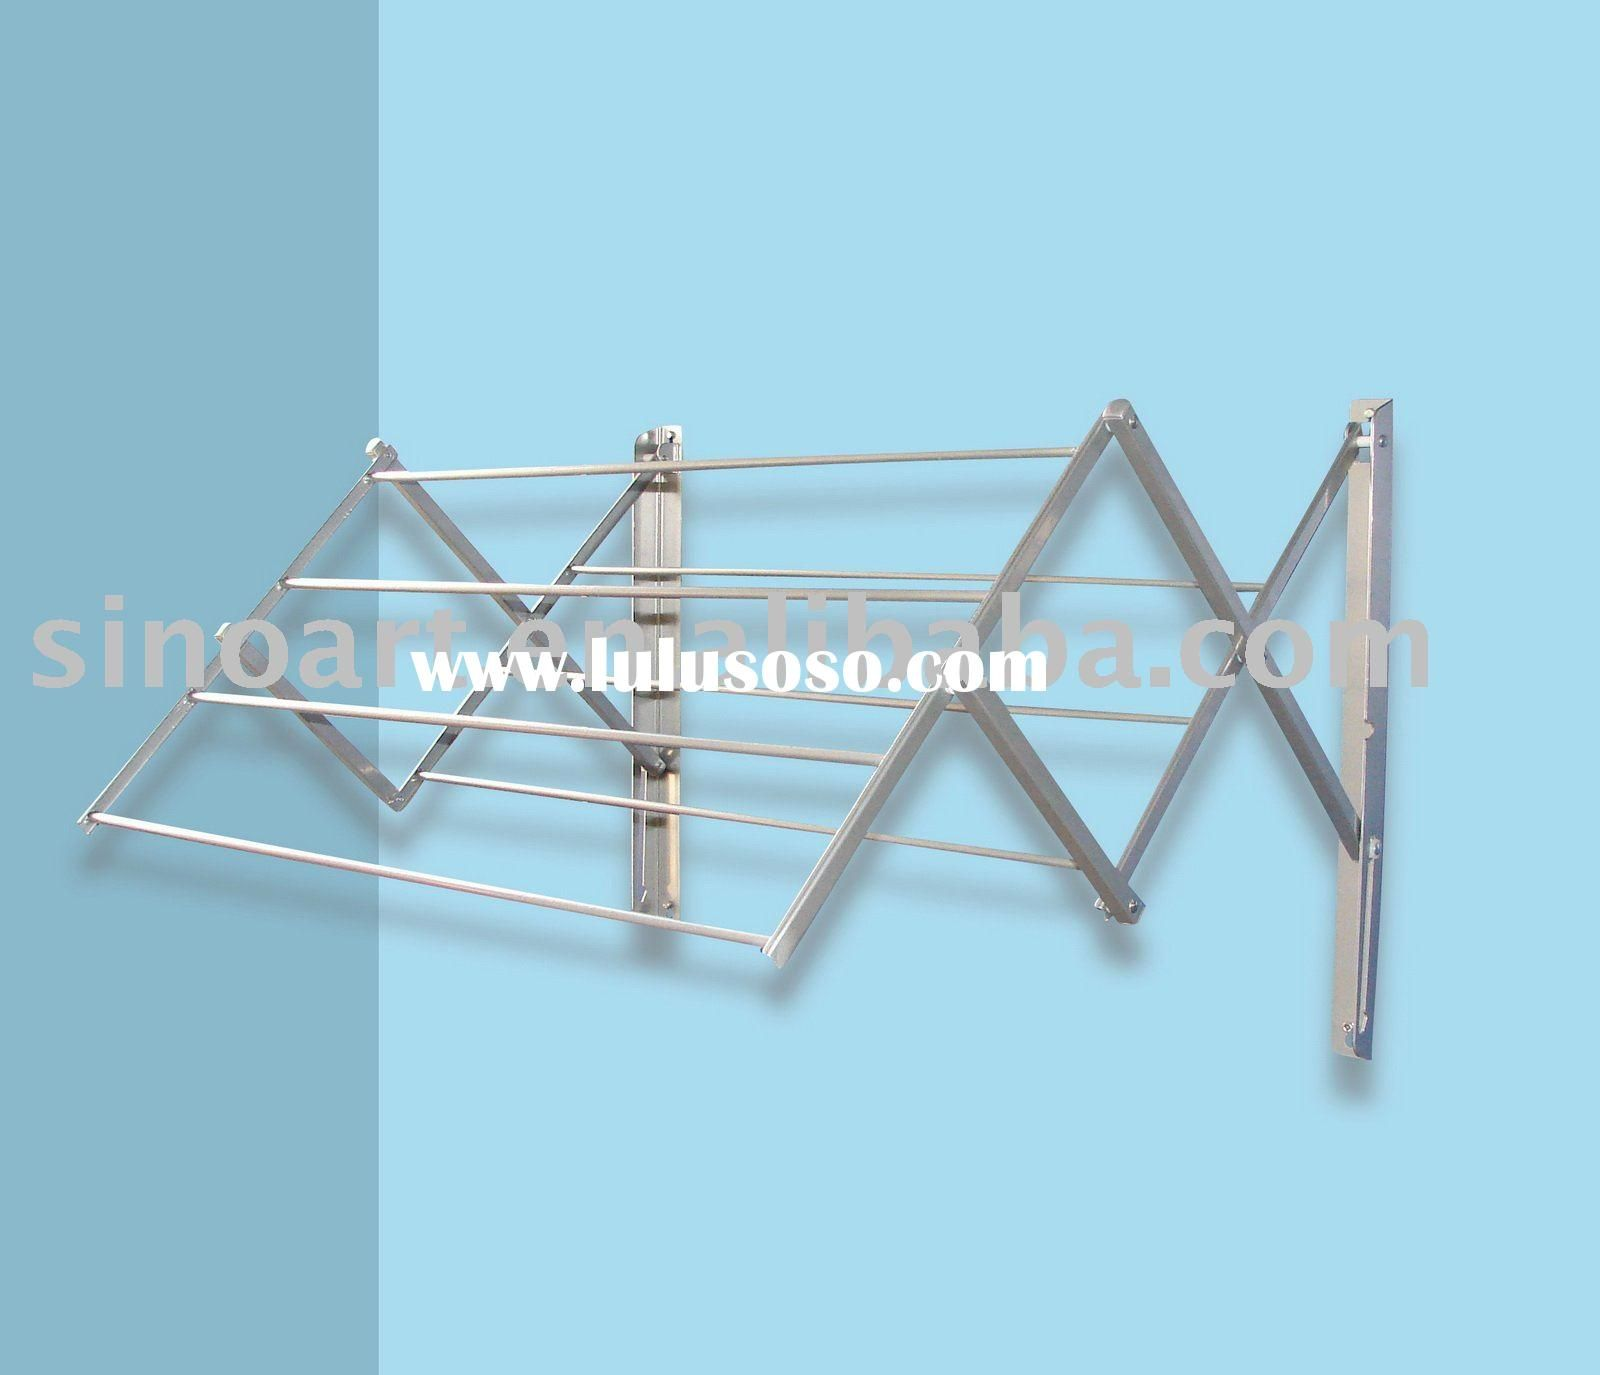 Wall Mounted Dryer Rack In 2019 Wall Drying Rack Wall